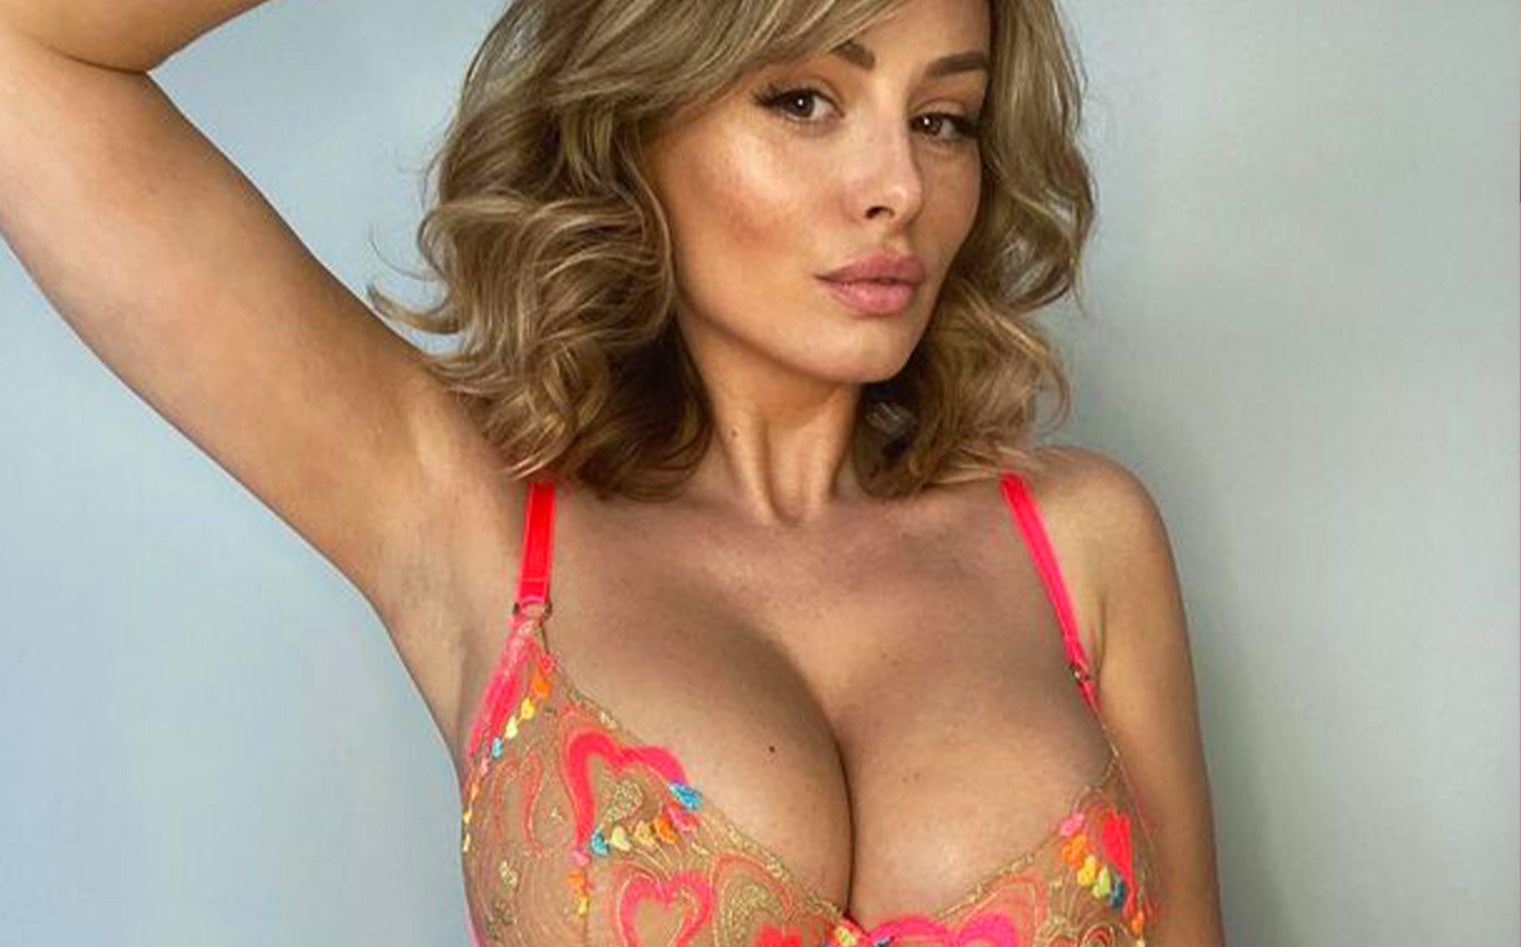 Rhian Sugden flaunts mega cleavage in colourful Honey Birdette nude illusion lingerie display | DailyStar